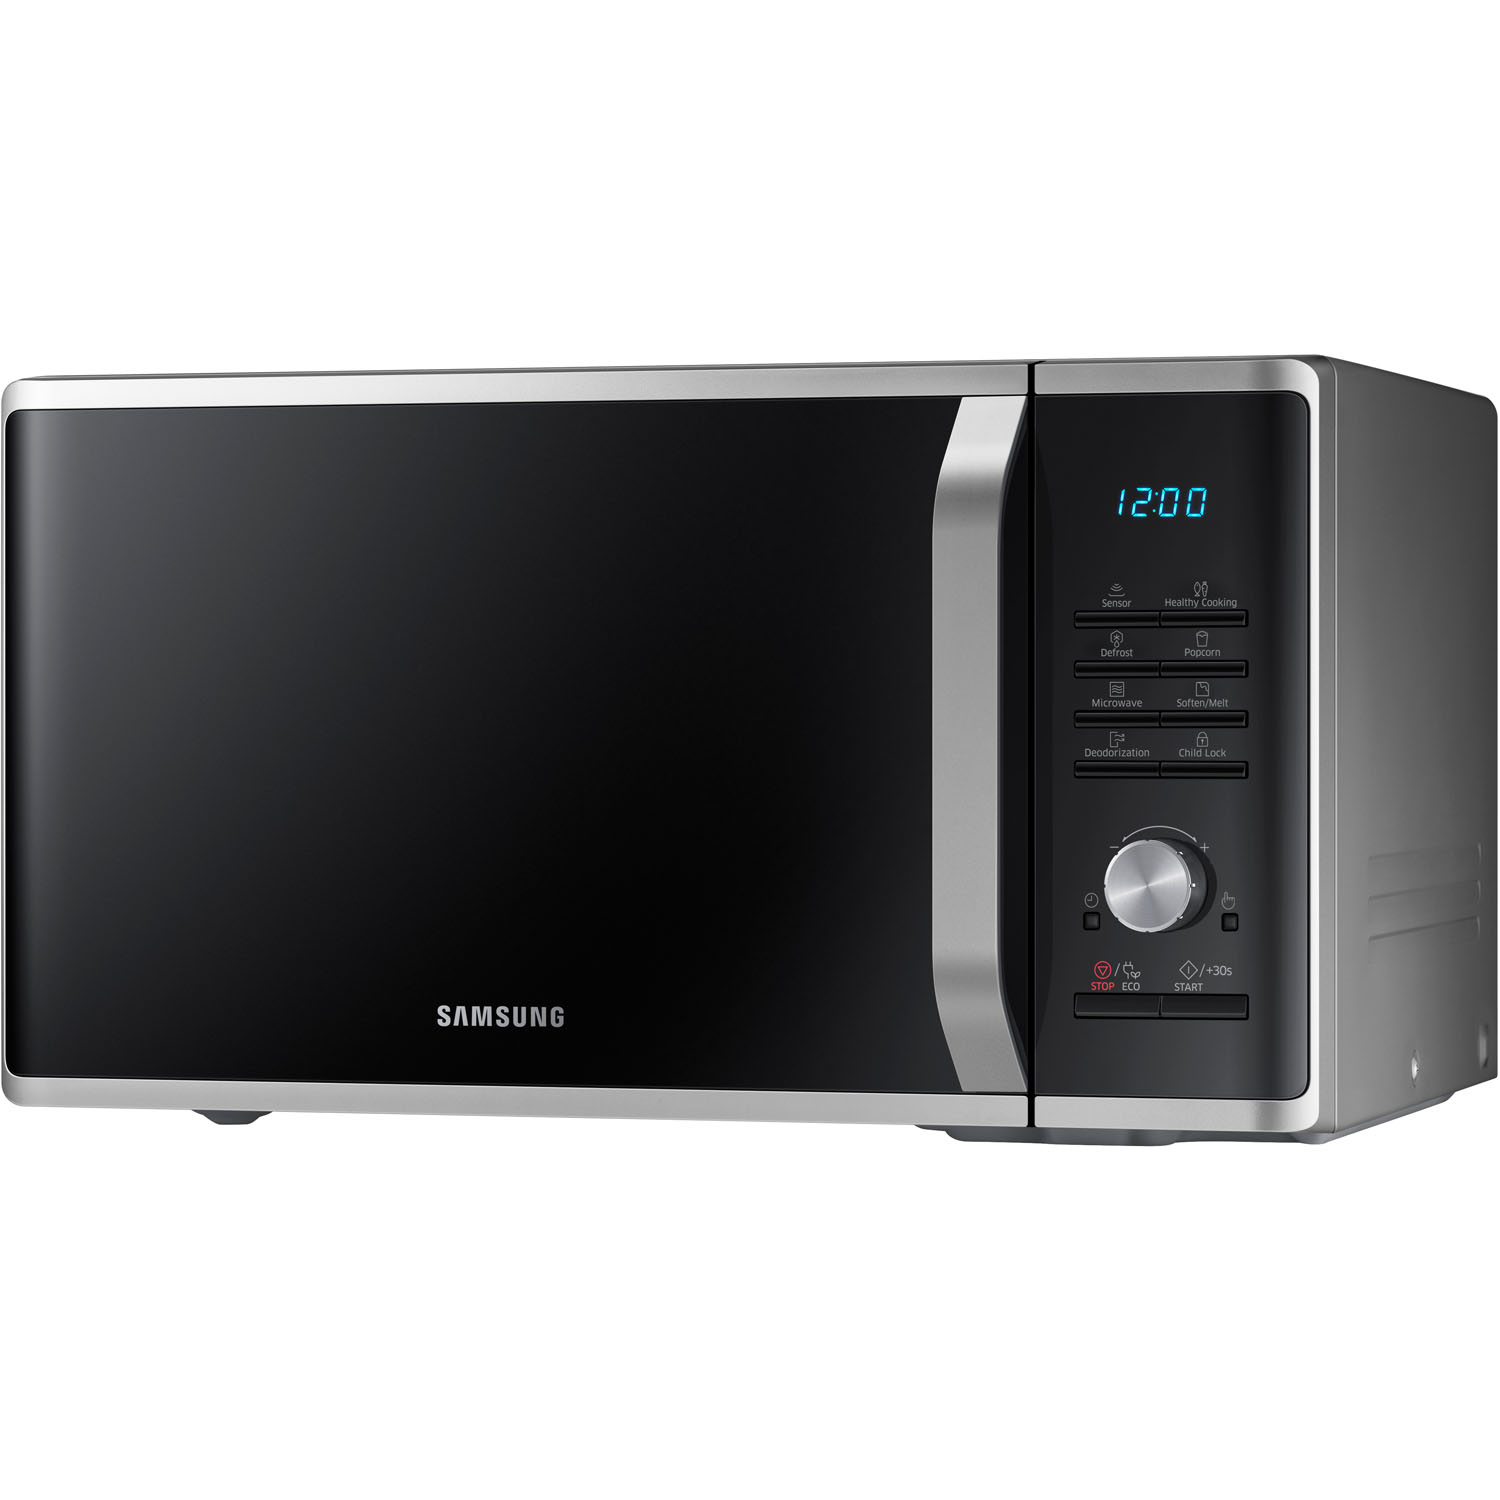 samsung 1 1 cu ft countertop microwave silver sand